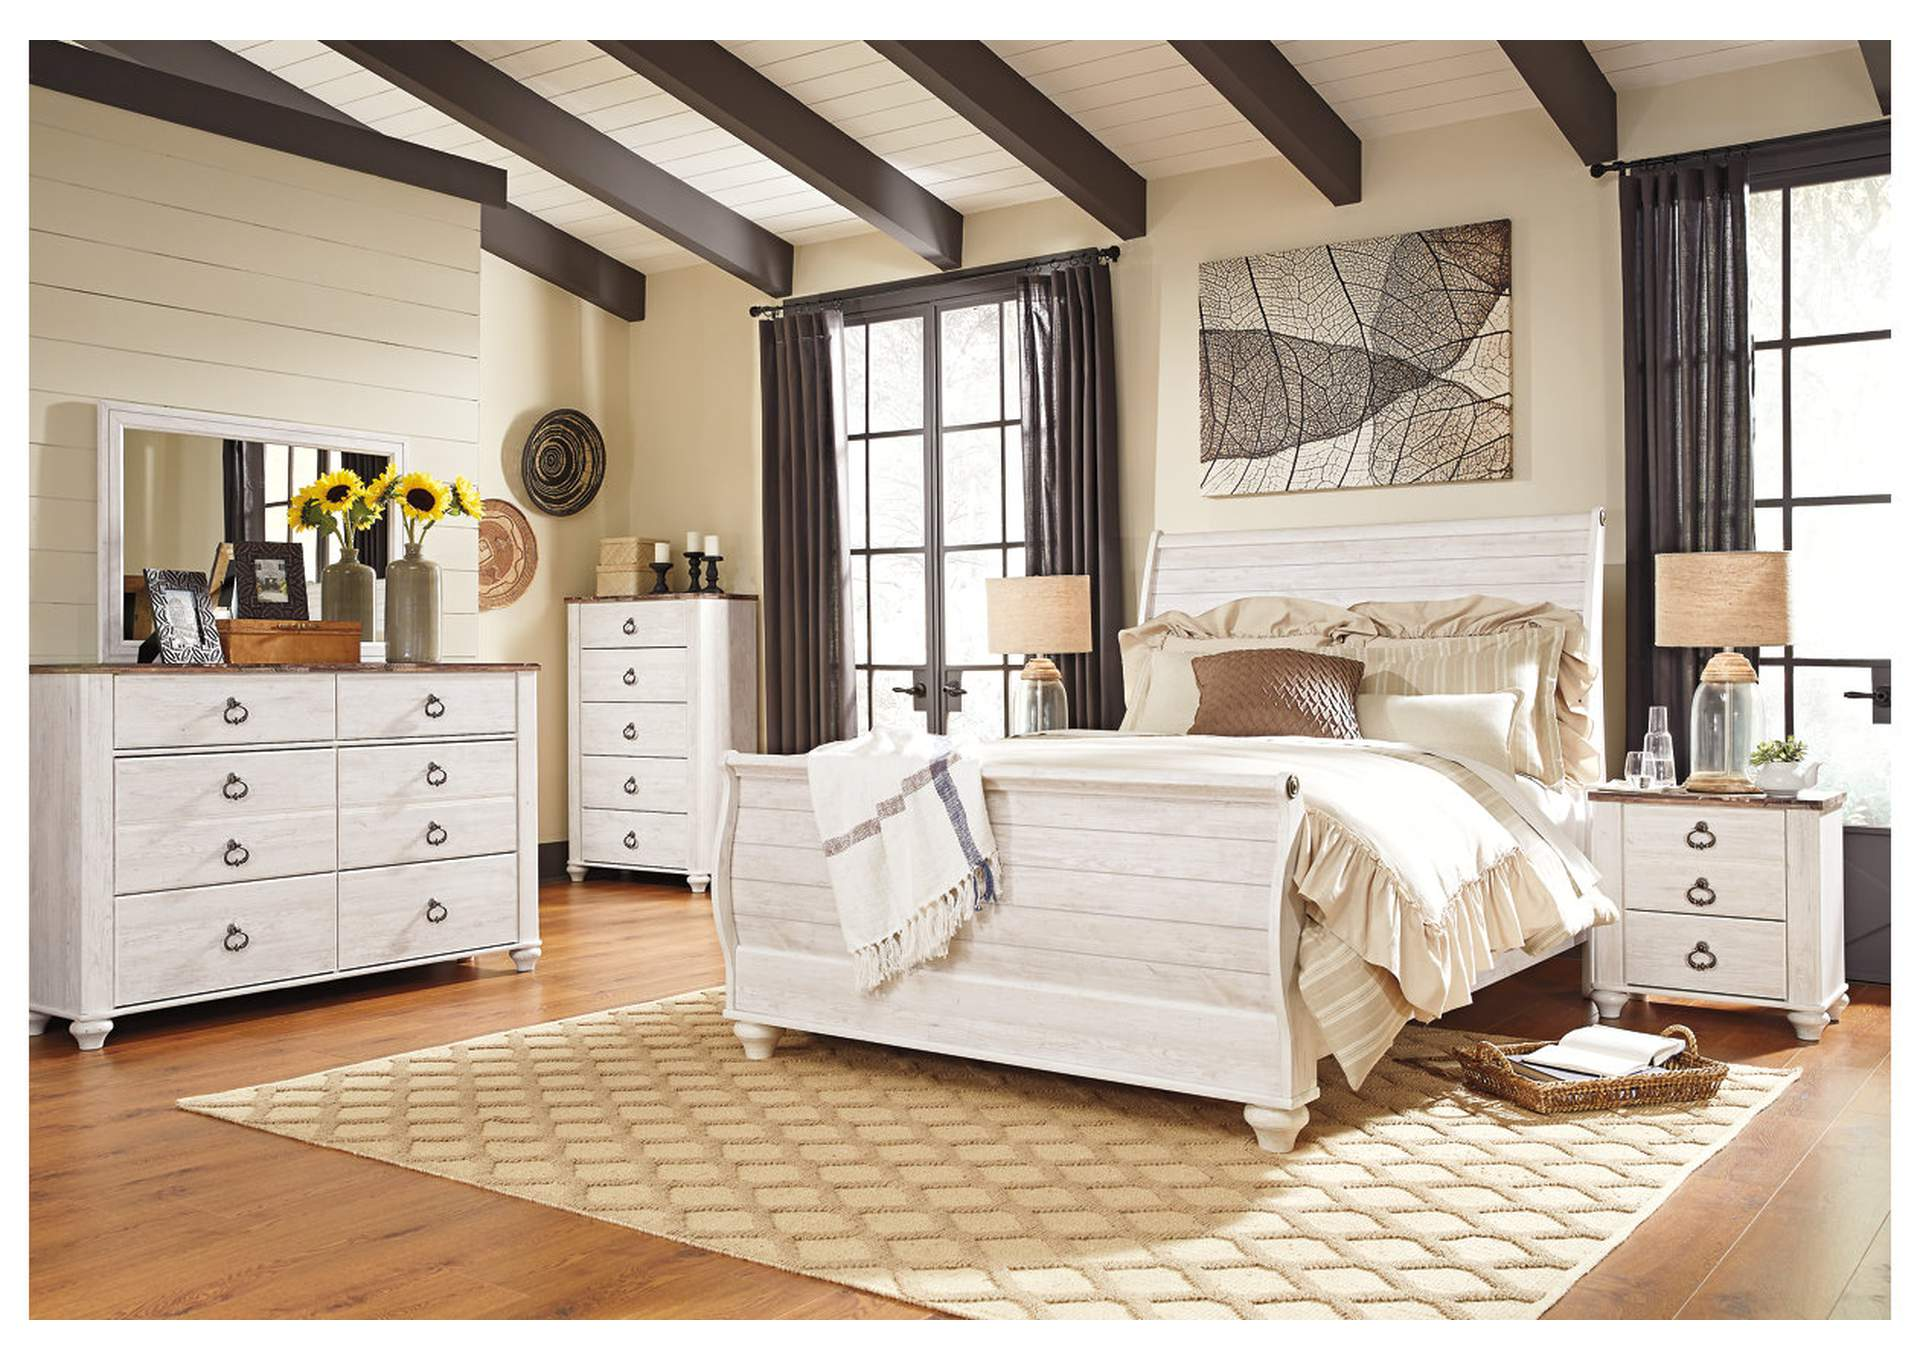 furniture deals millington tn willowton whitewash queen willowton sleigh bedroom set bedroom sets bedroom